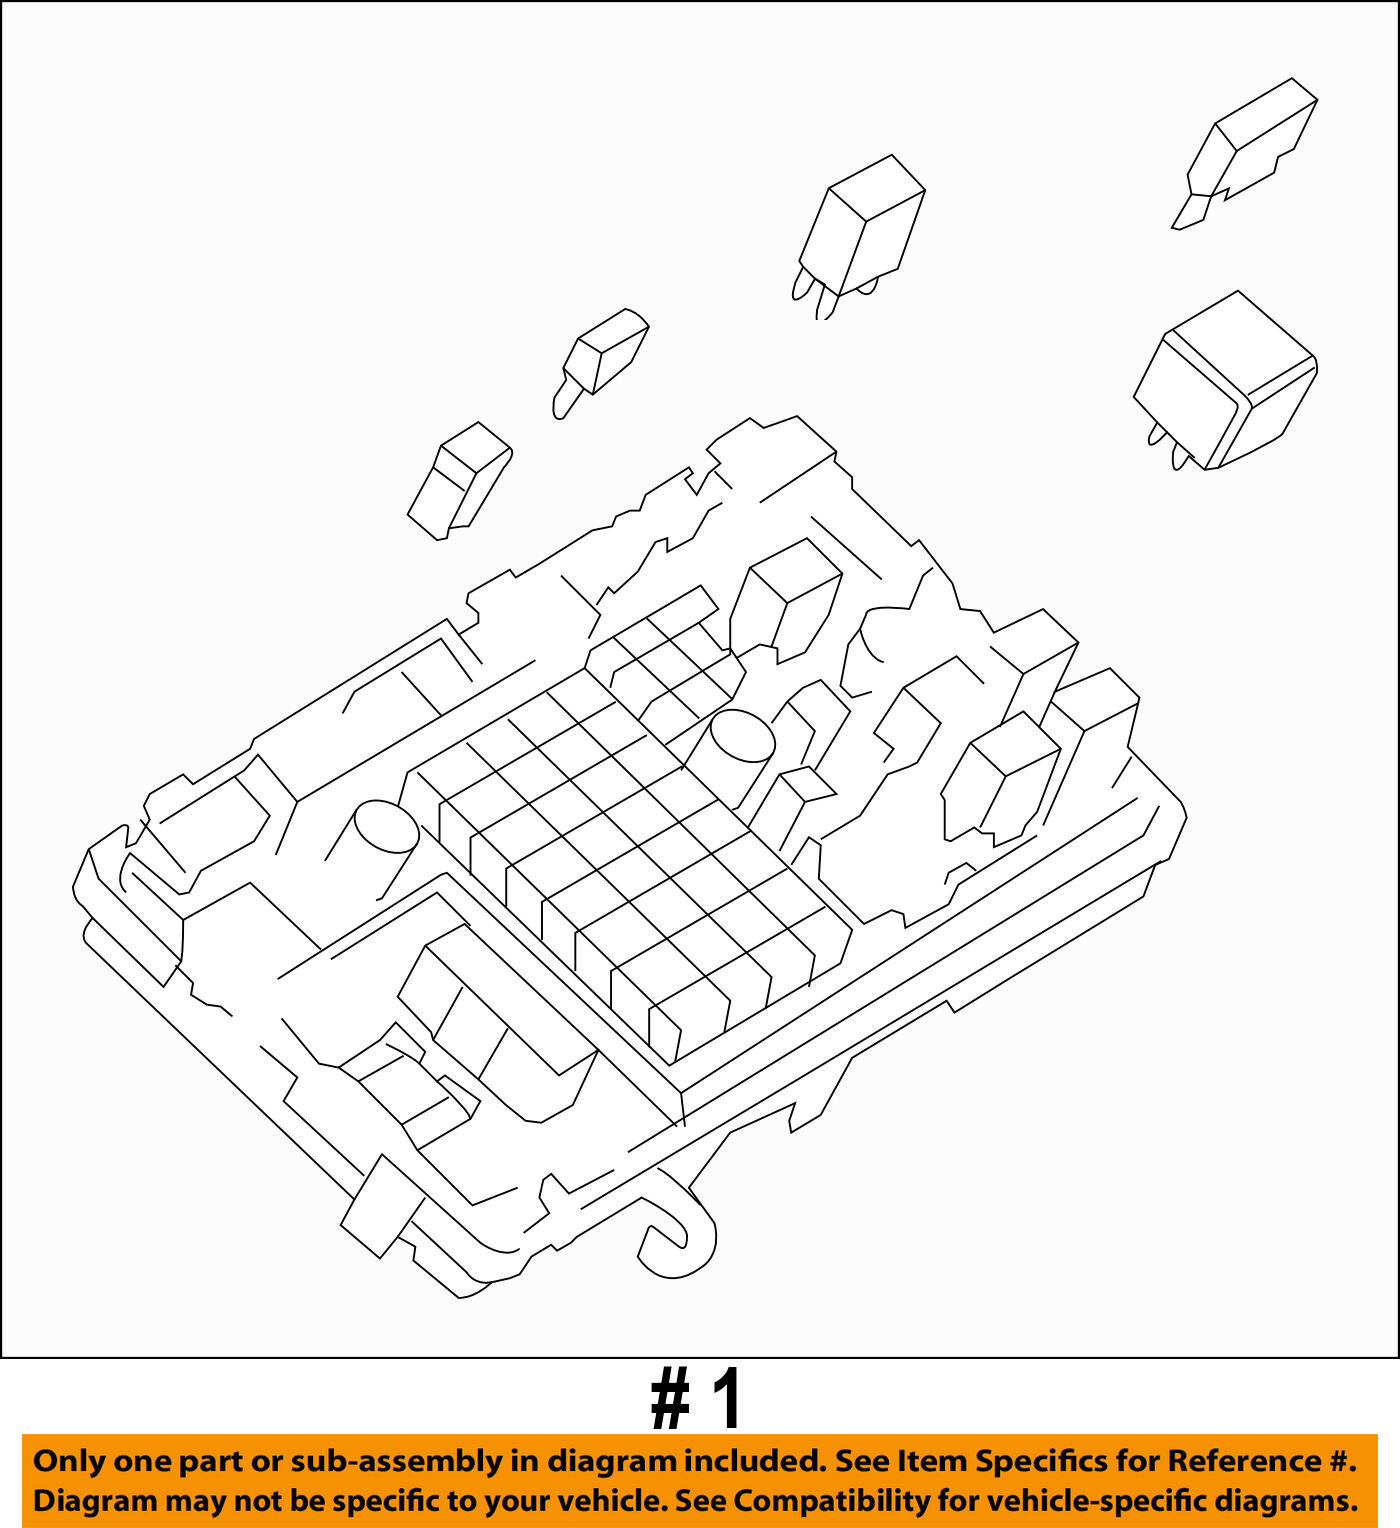 hight resolution of fuse gm box 25888290 schematic diagram databasefuse gm box 25888290 wiring diagram used fuse gm box